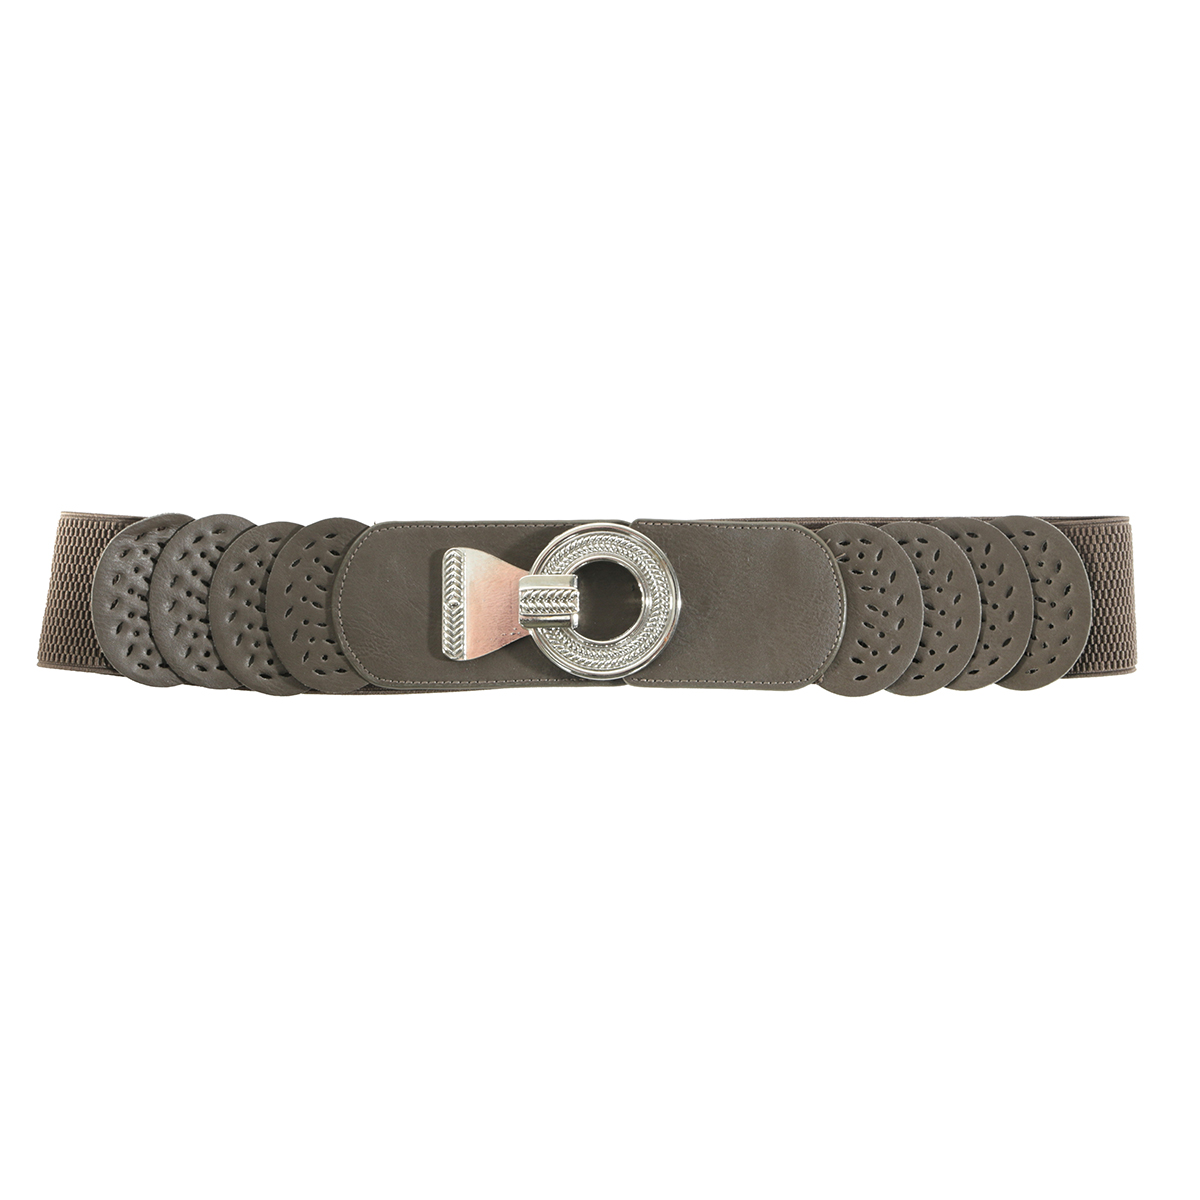 "BROWN 35"" CIRCLE BUCKLE BELT"